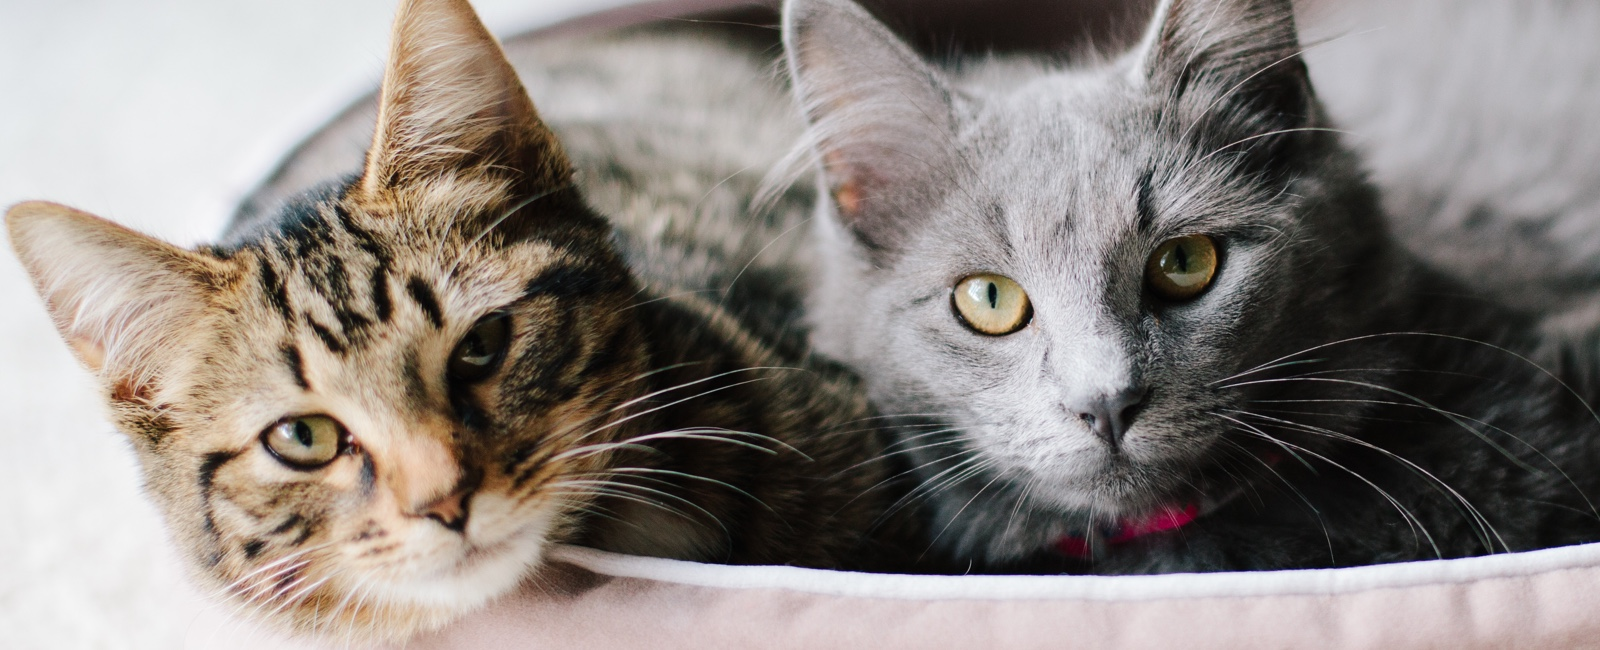 VCA Team Page Picture of 2 Cats in a basket